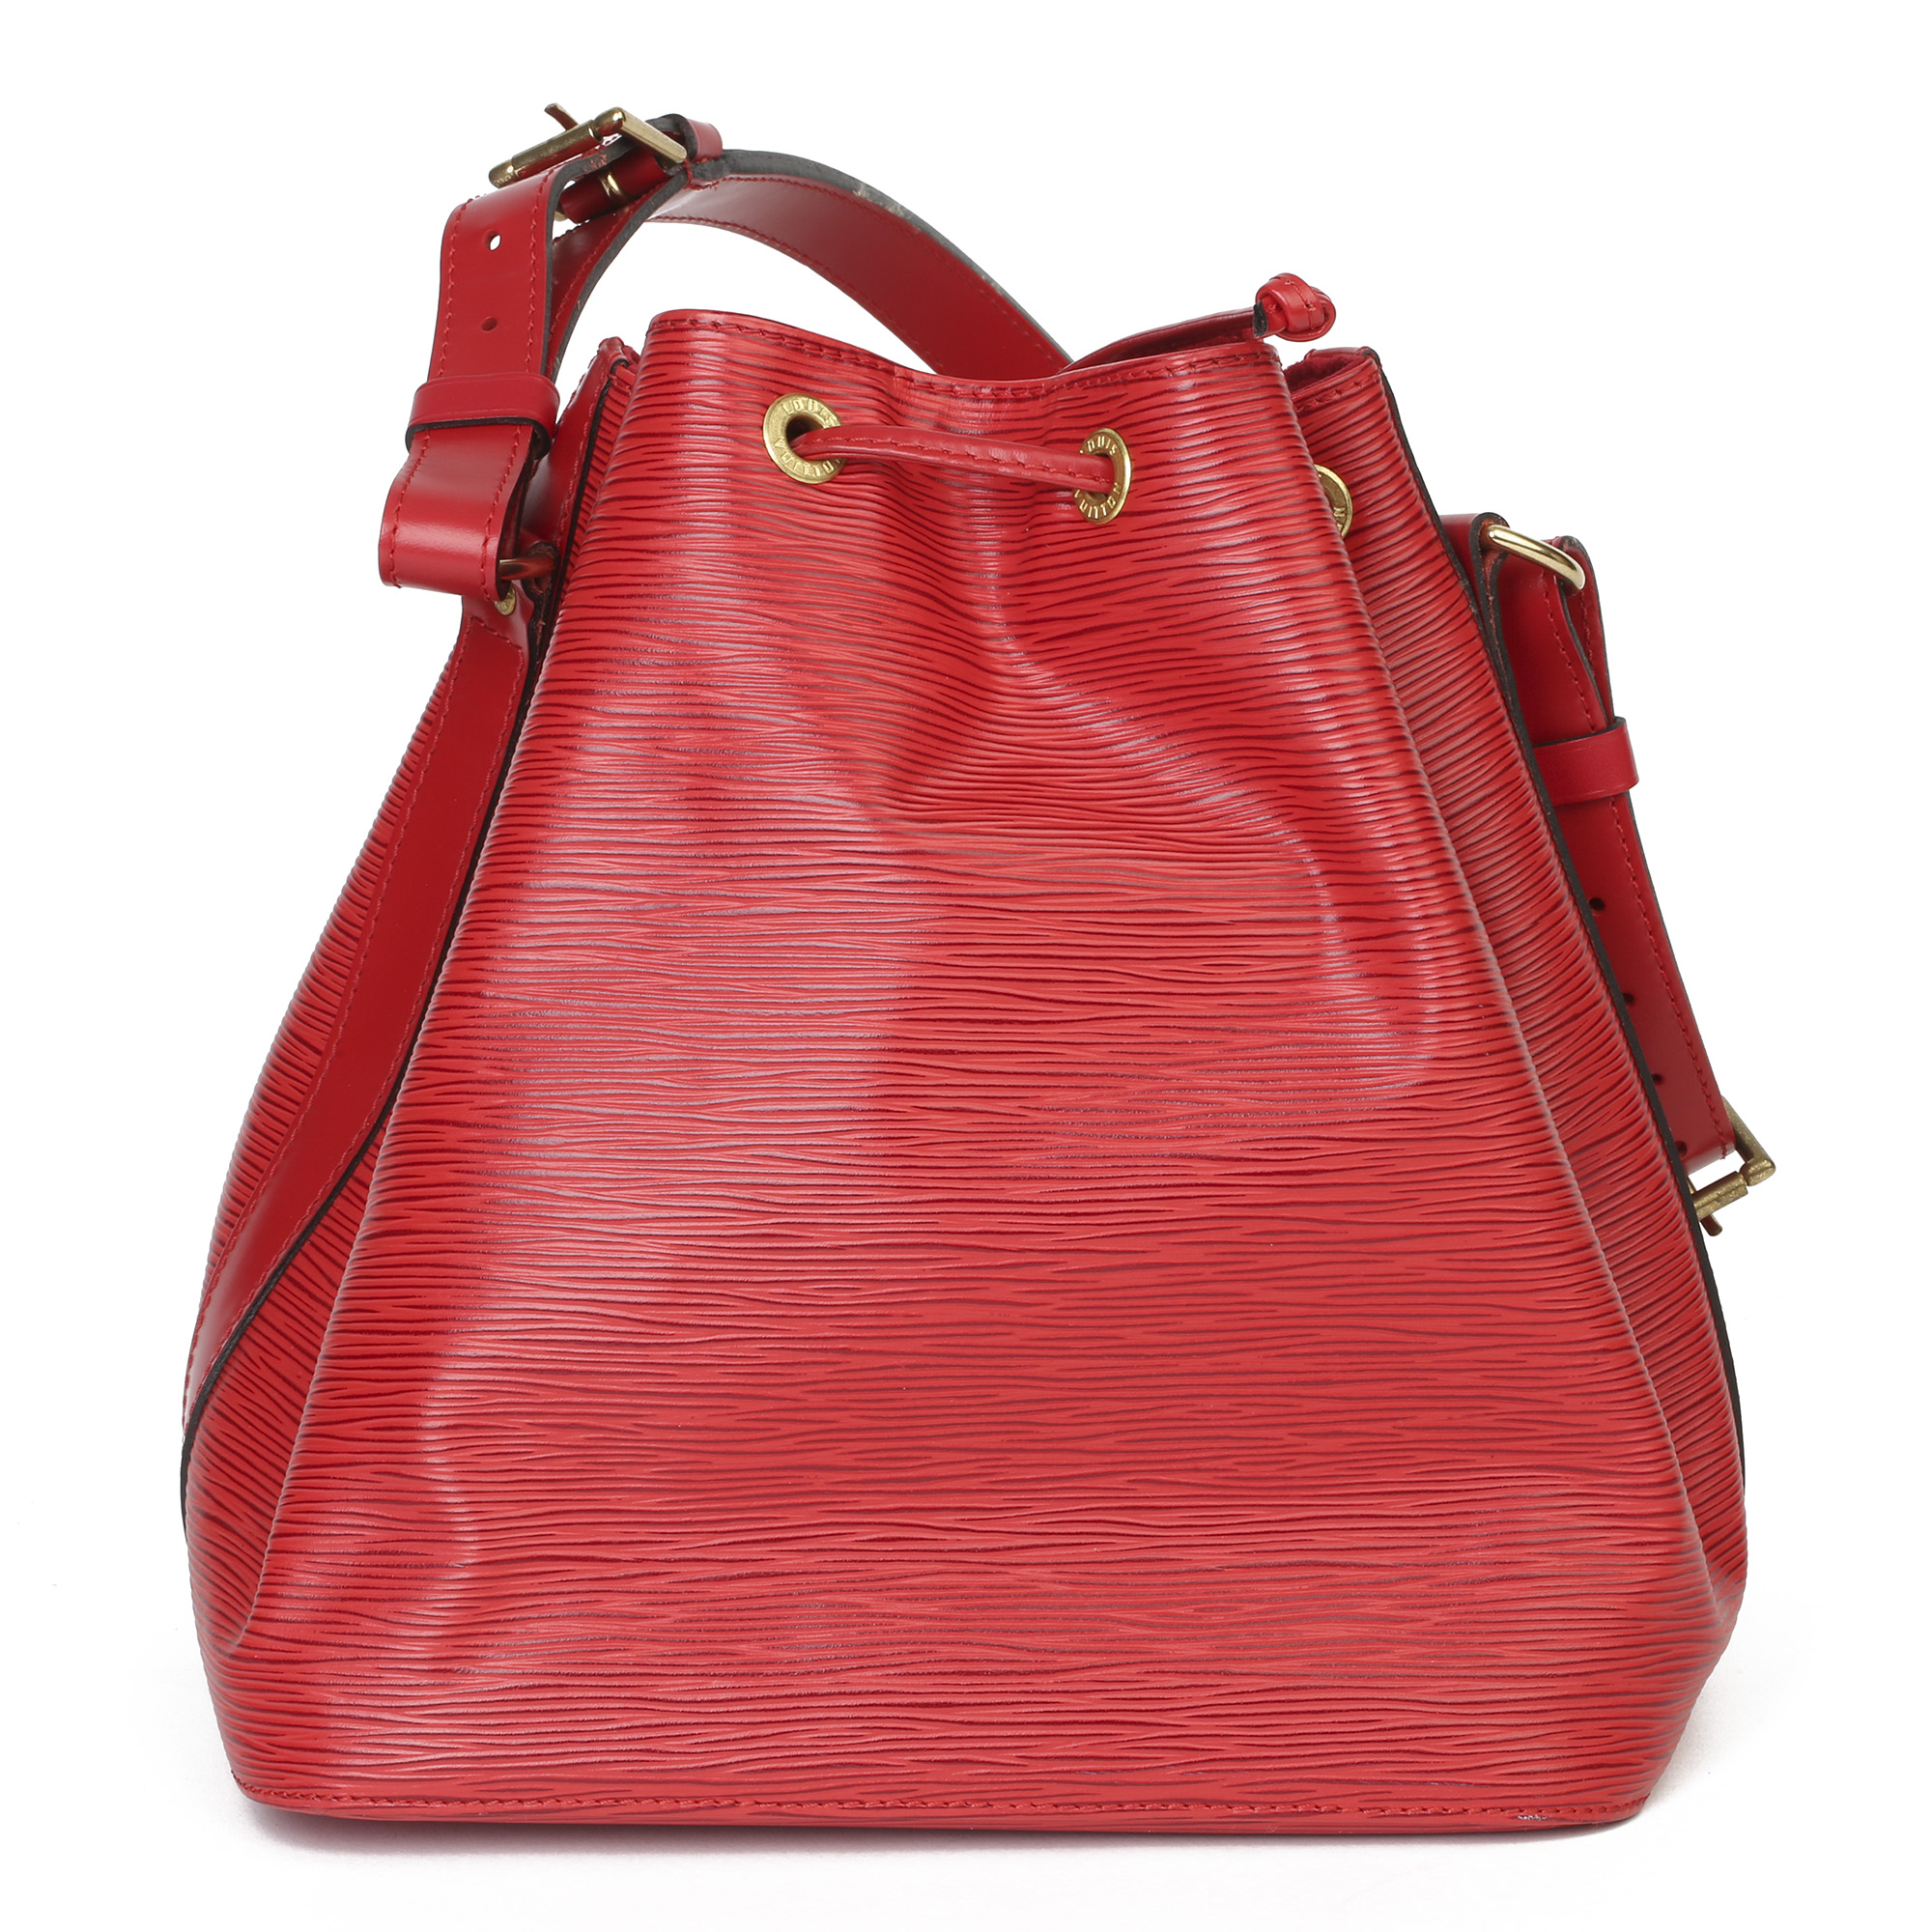 Louis Vuitton Red Epi Leather Vintage Petit NoŽ - Image 9 of 11